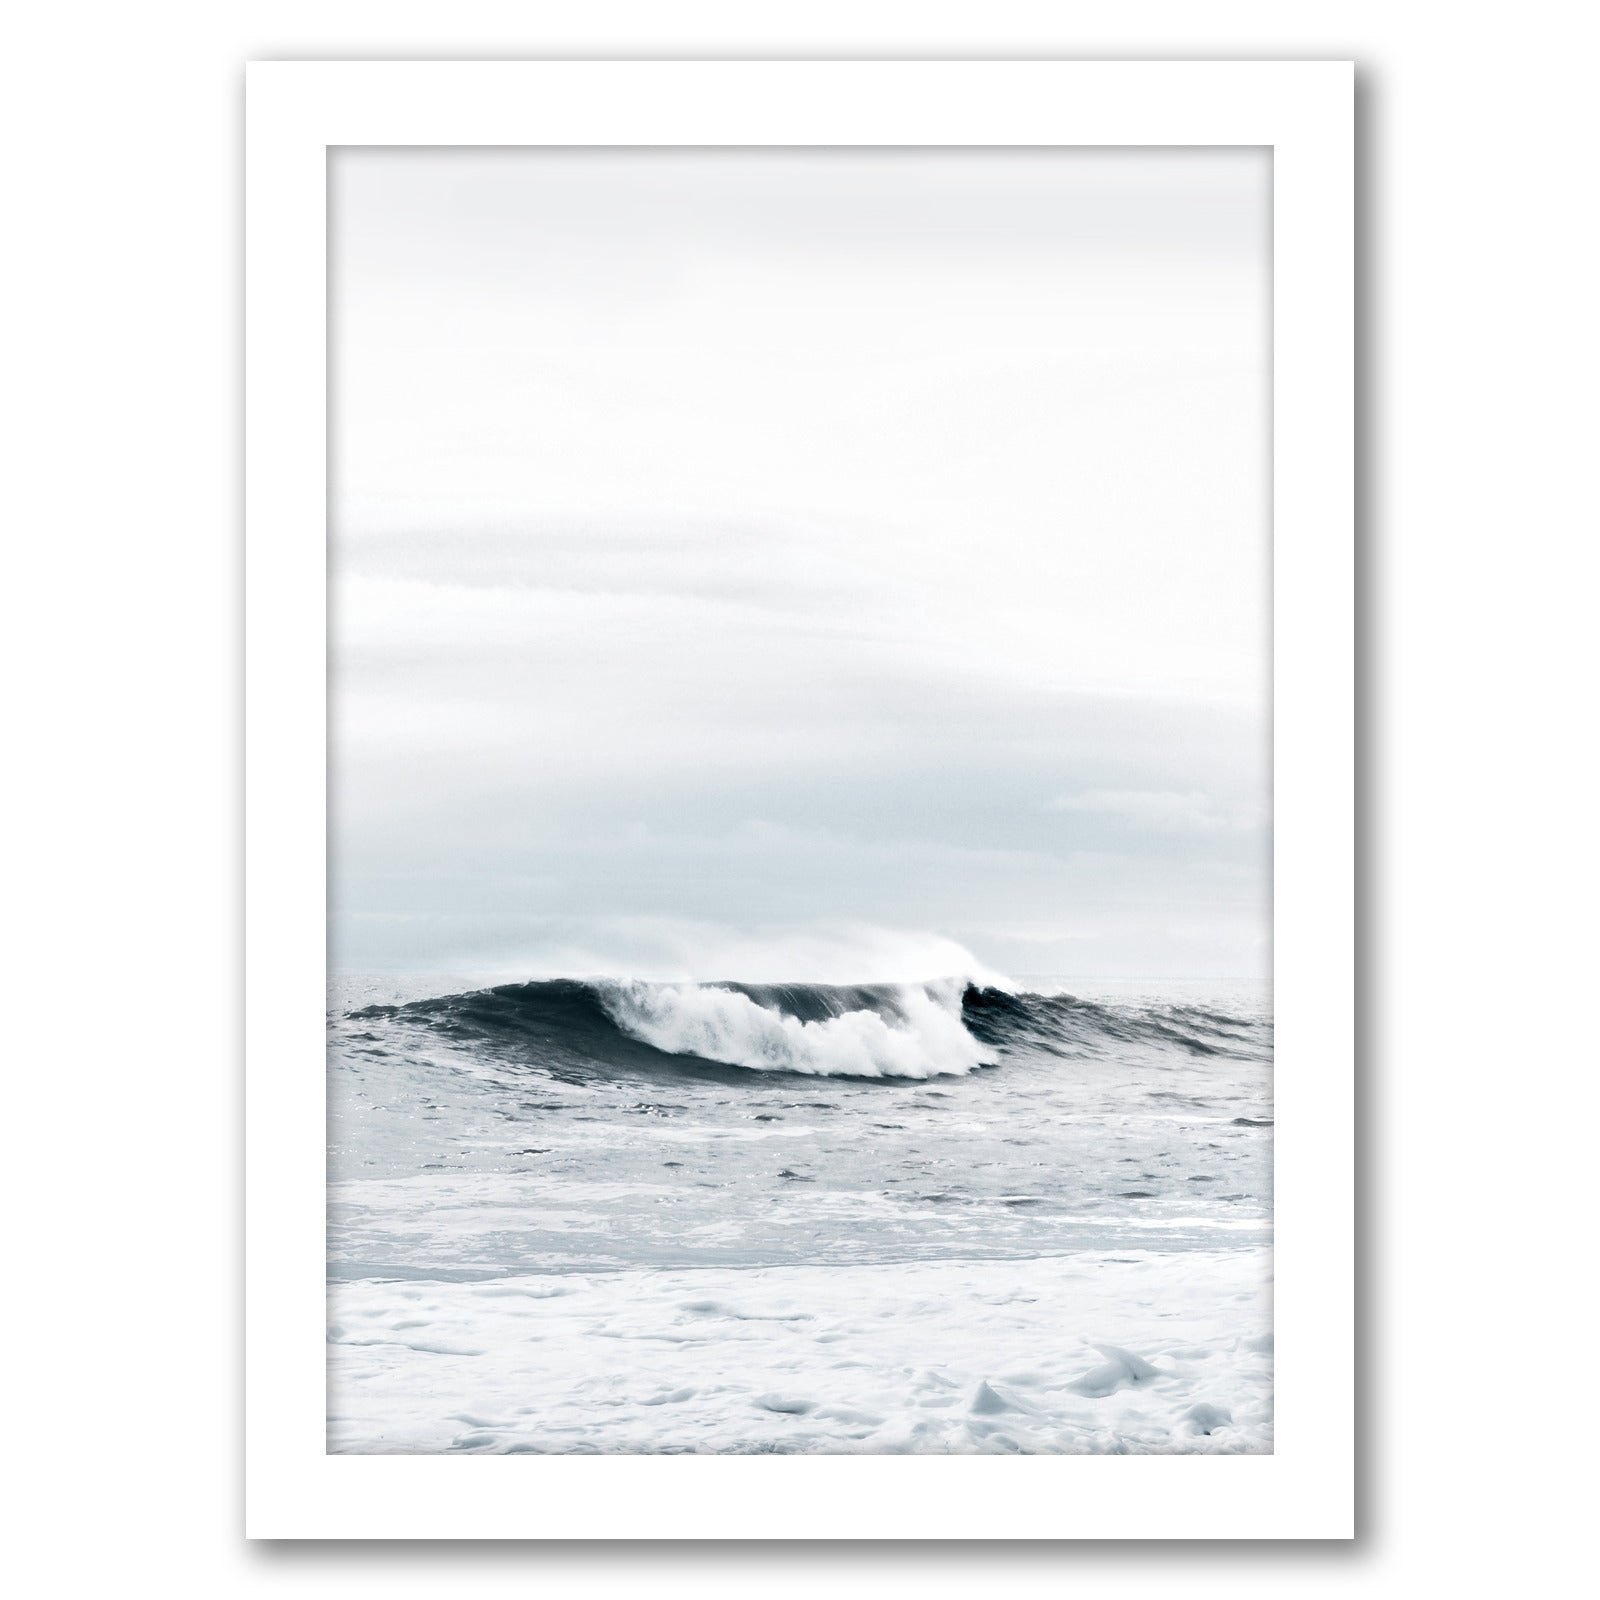 "Wave by Tanya Shumkina - White Framed Print, Wall Art, Tanya Shumkina, 8"" x 10"""